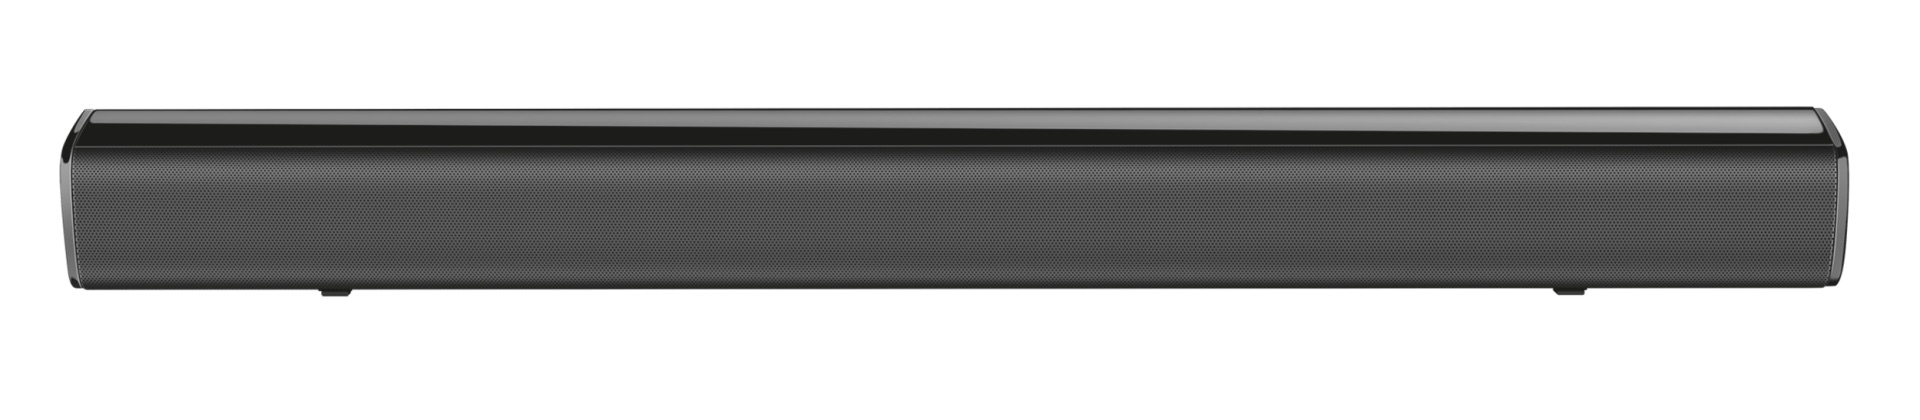 TRUST Lino XL 2.0 All-round Soundbar with BT (S dálkovým ovladačem)